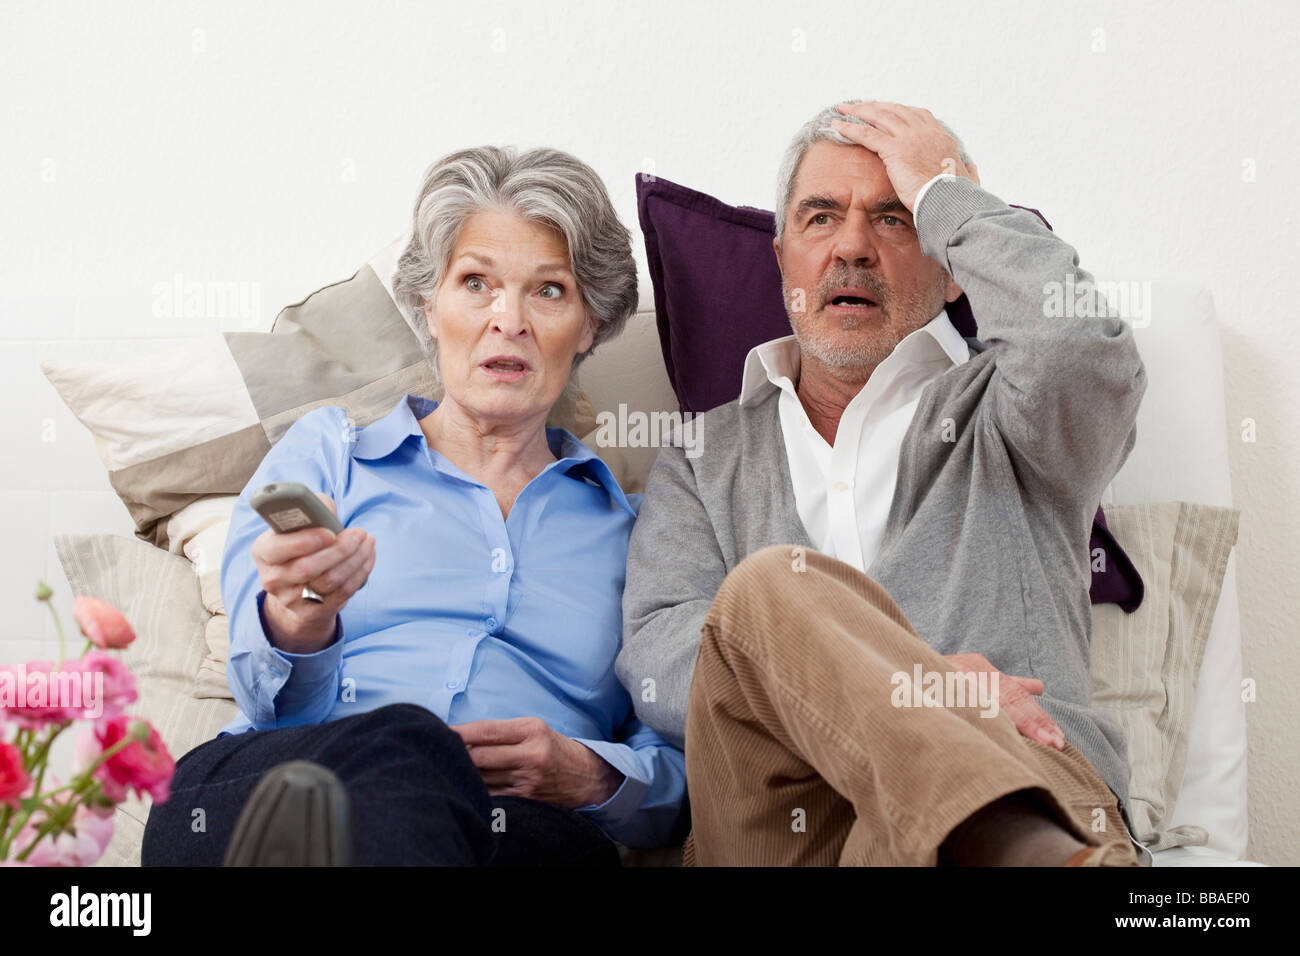 A couple watching something unbelievable on TV - Stock Image